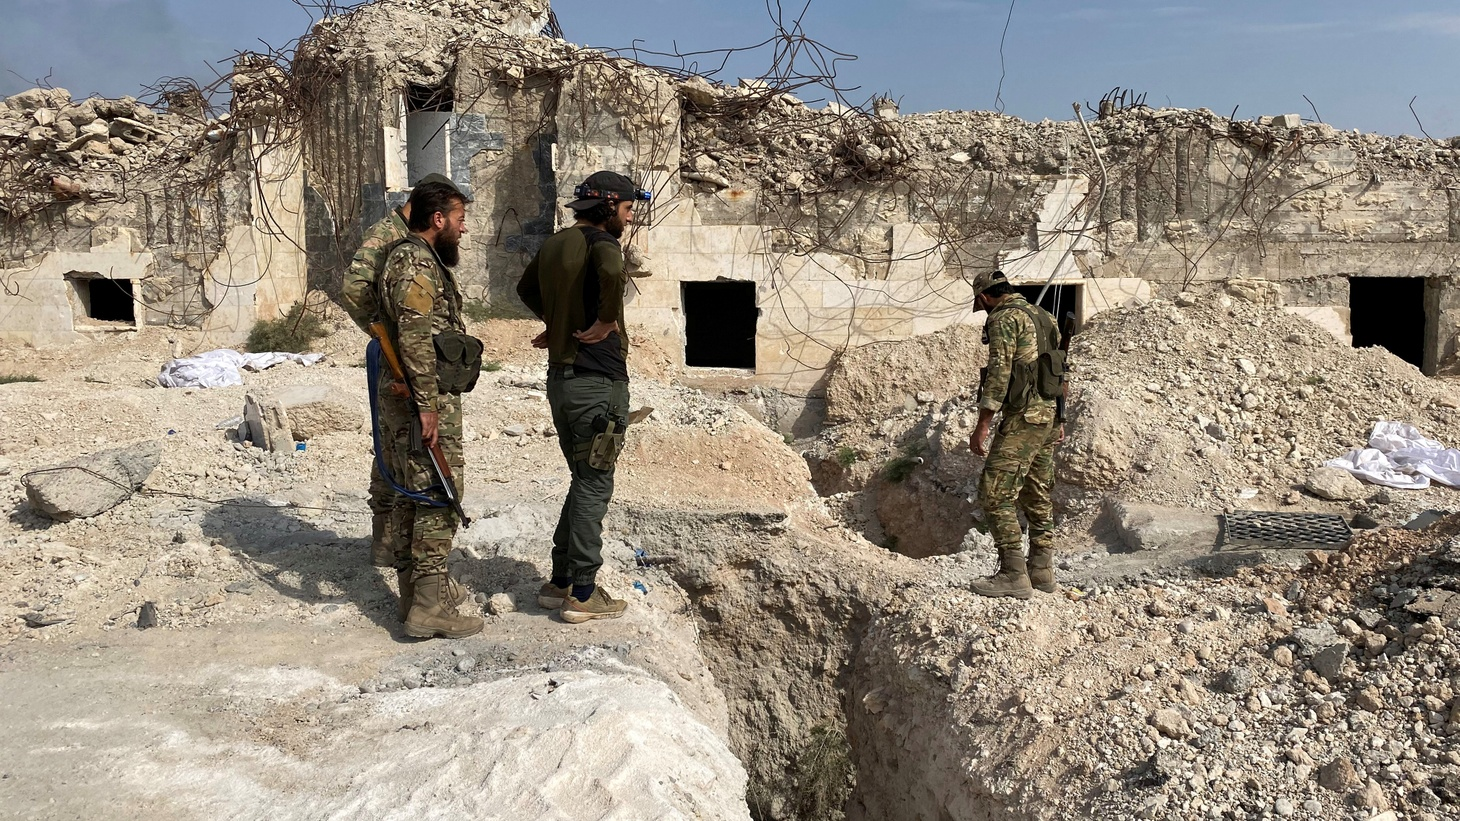 Turkey-backed Syrian rebel fighters stand near underground tunnels said to be made by the Syrian Democratic Forces (SDF) in Tal Abyad, Syria. October 17, 2019.